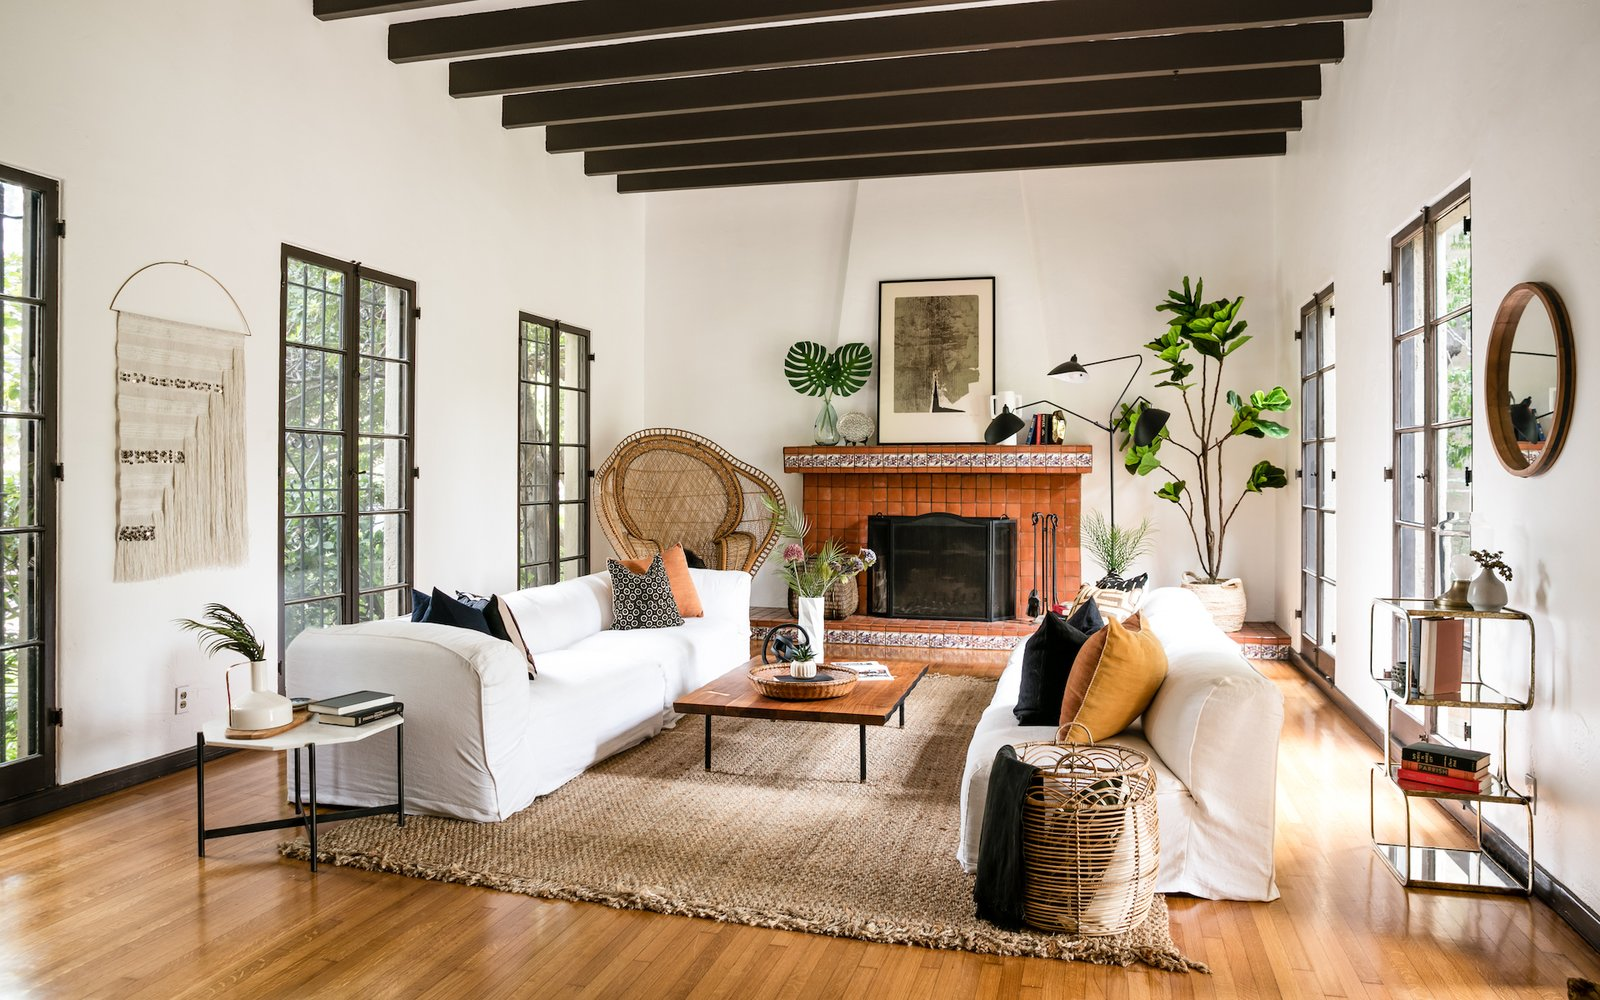 Spanish Revival Interior Design Own This Spacious Spanish Revival Home In L A For 2 95m Dwell